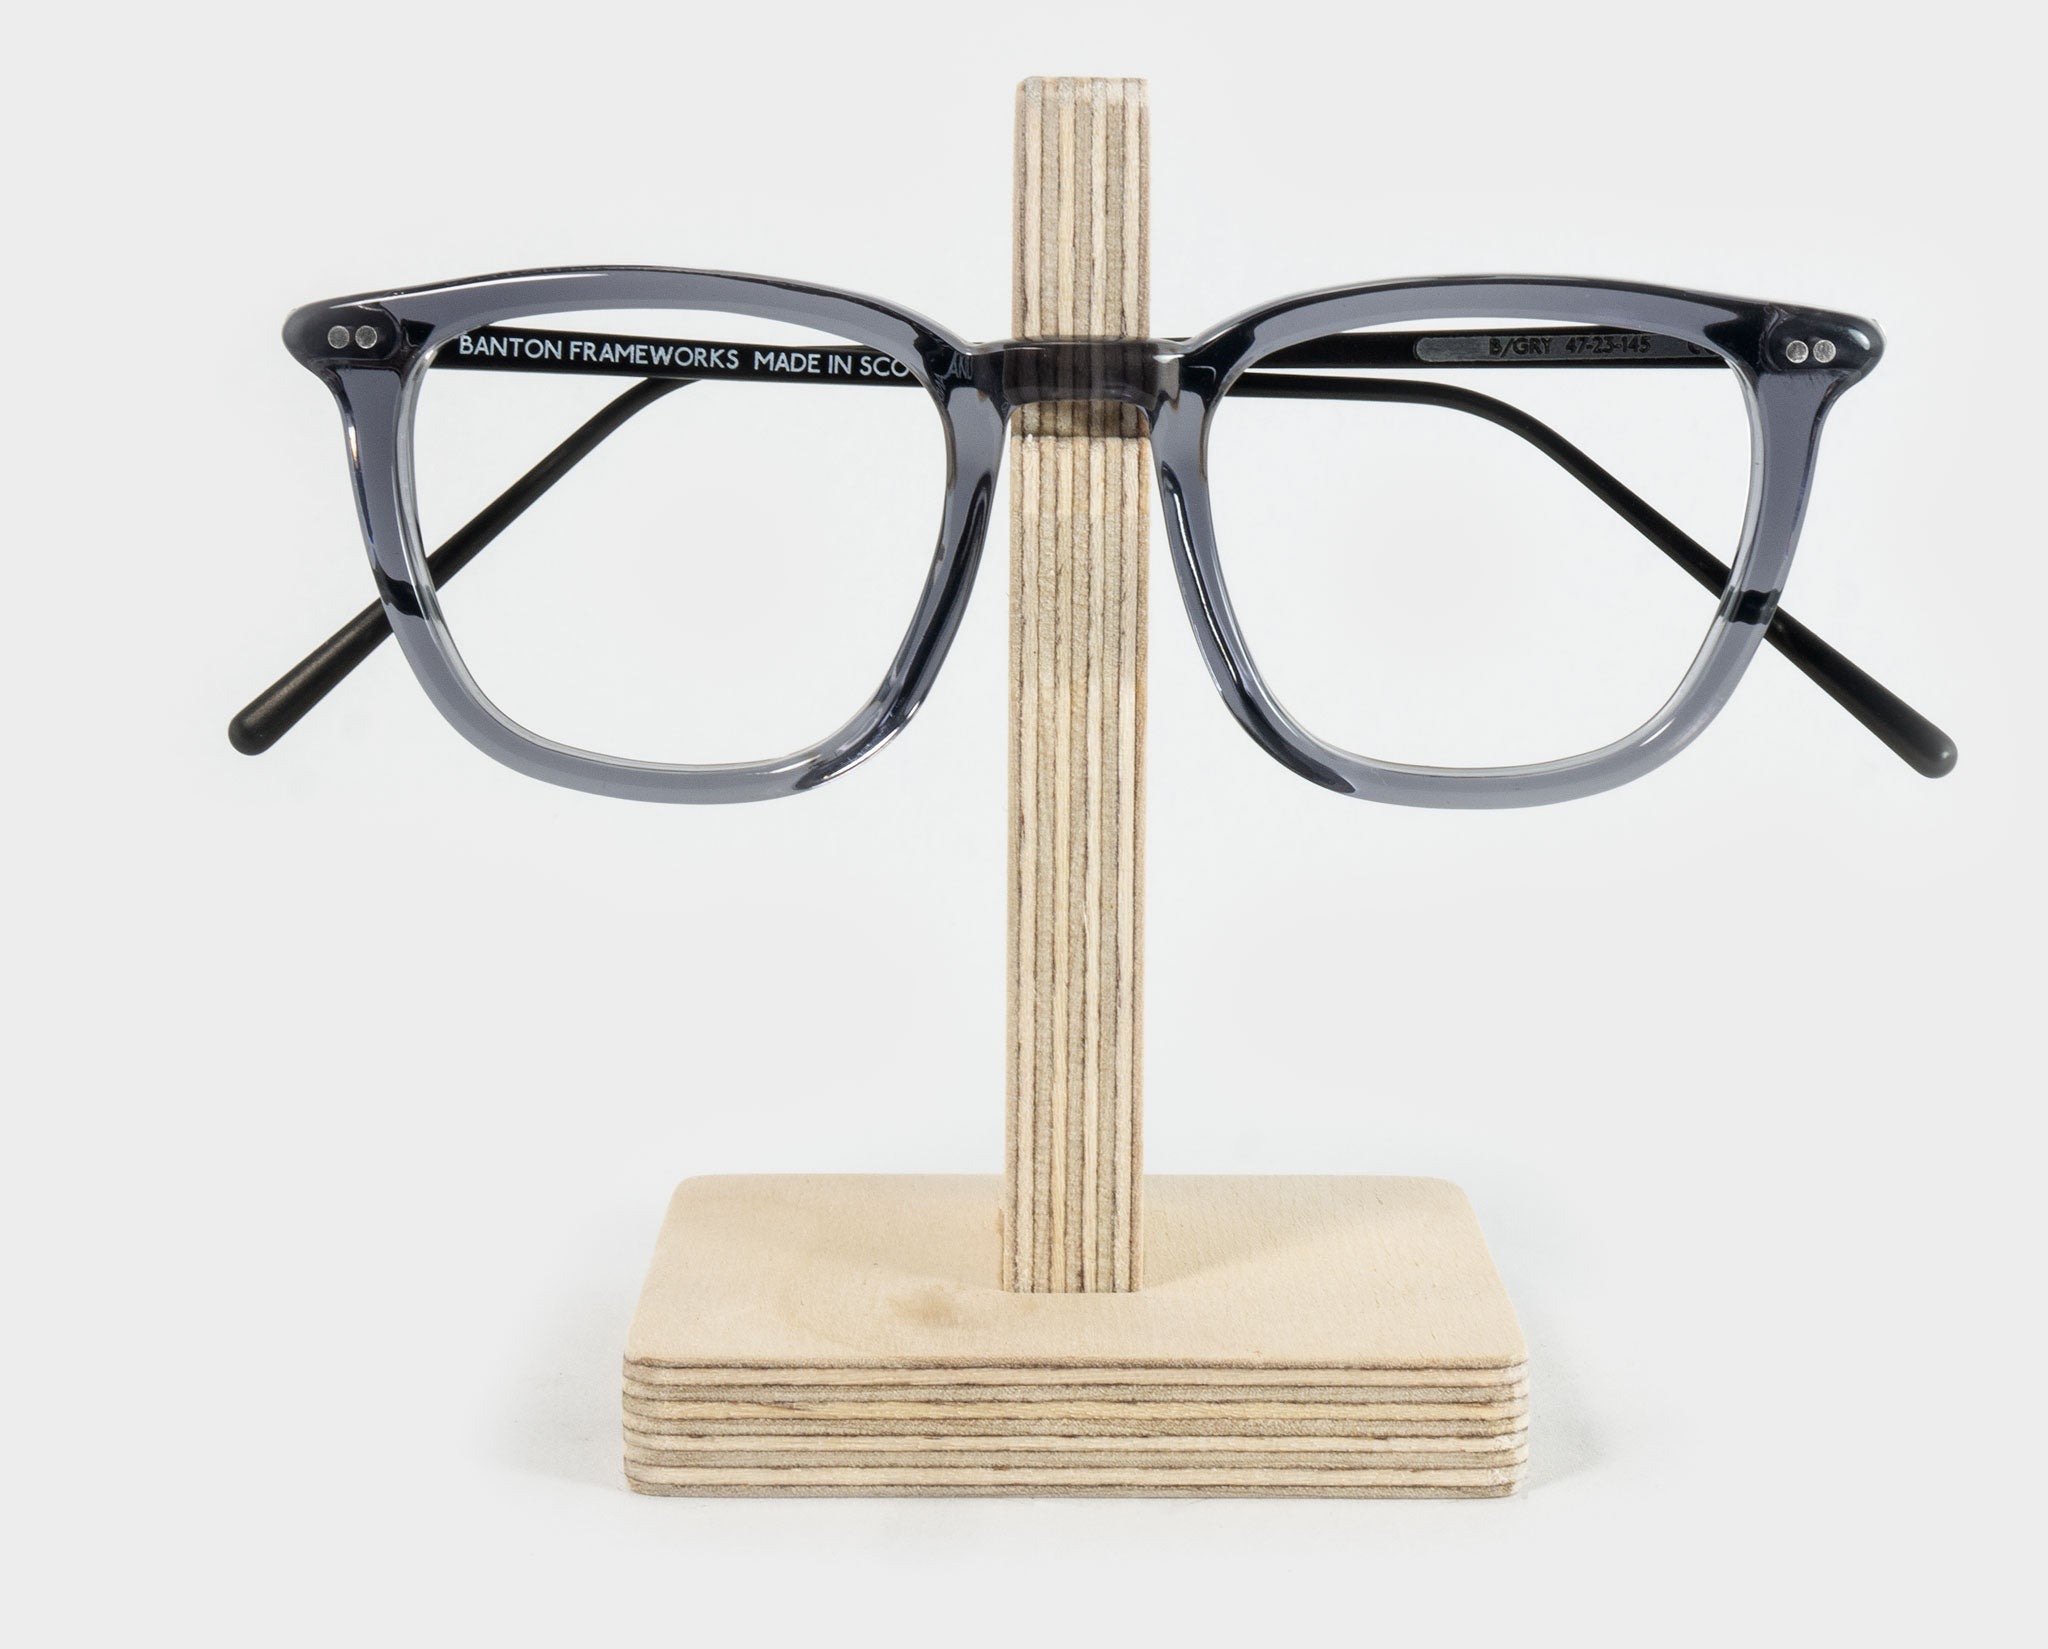 Wooden spectacle holder with glasses front view